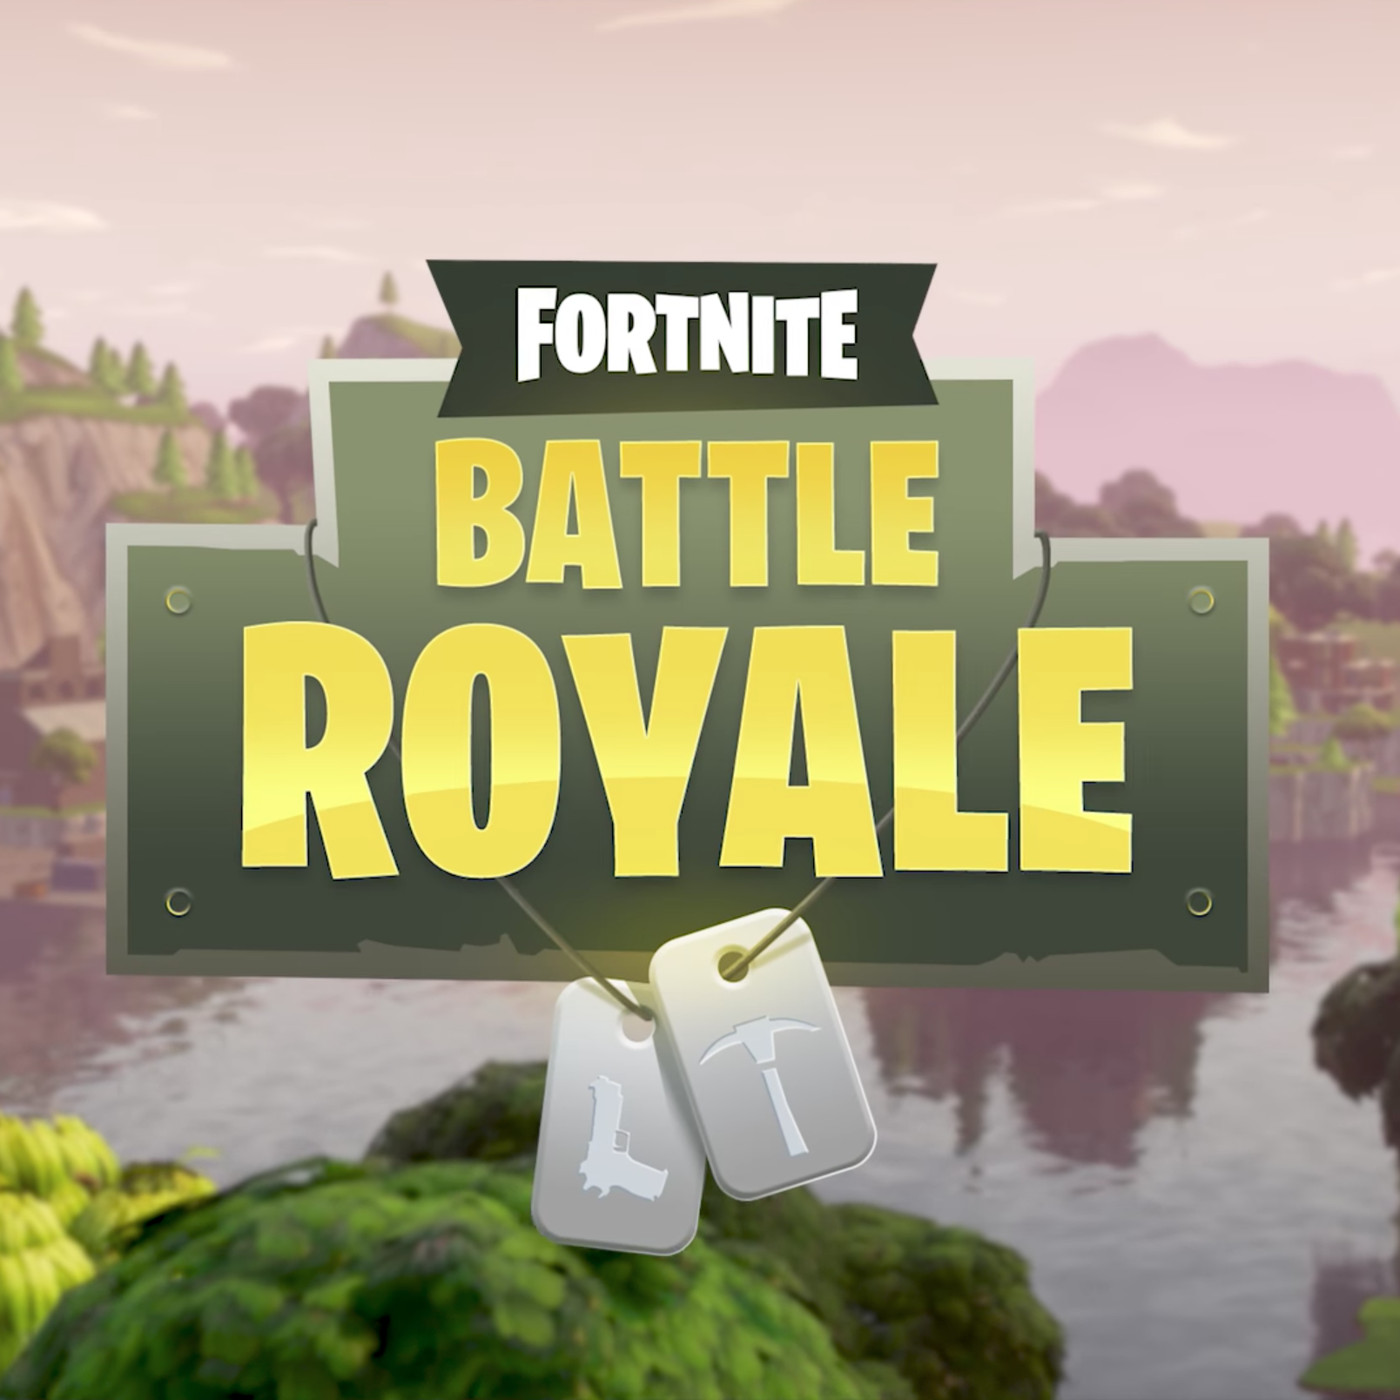 pubg creators are unhappy with fortnite battle royale considering further action - non copyright fortnite clips